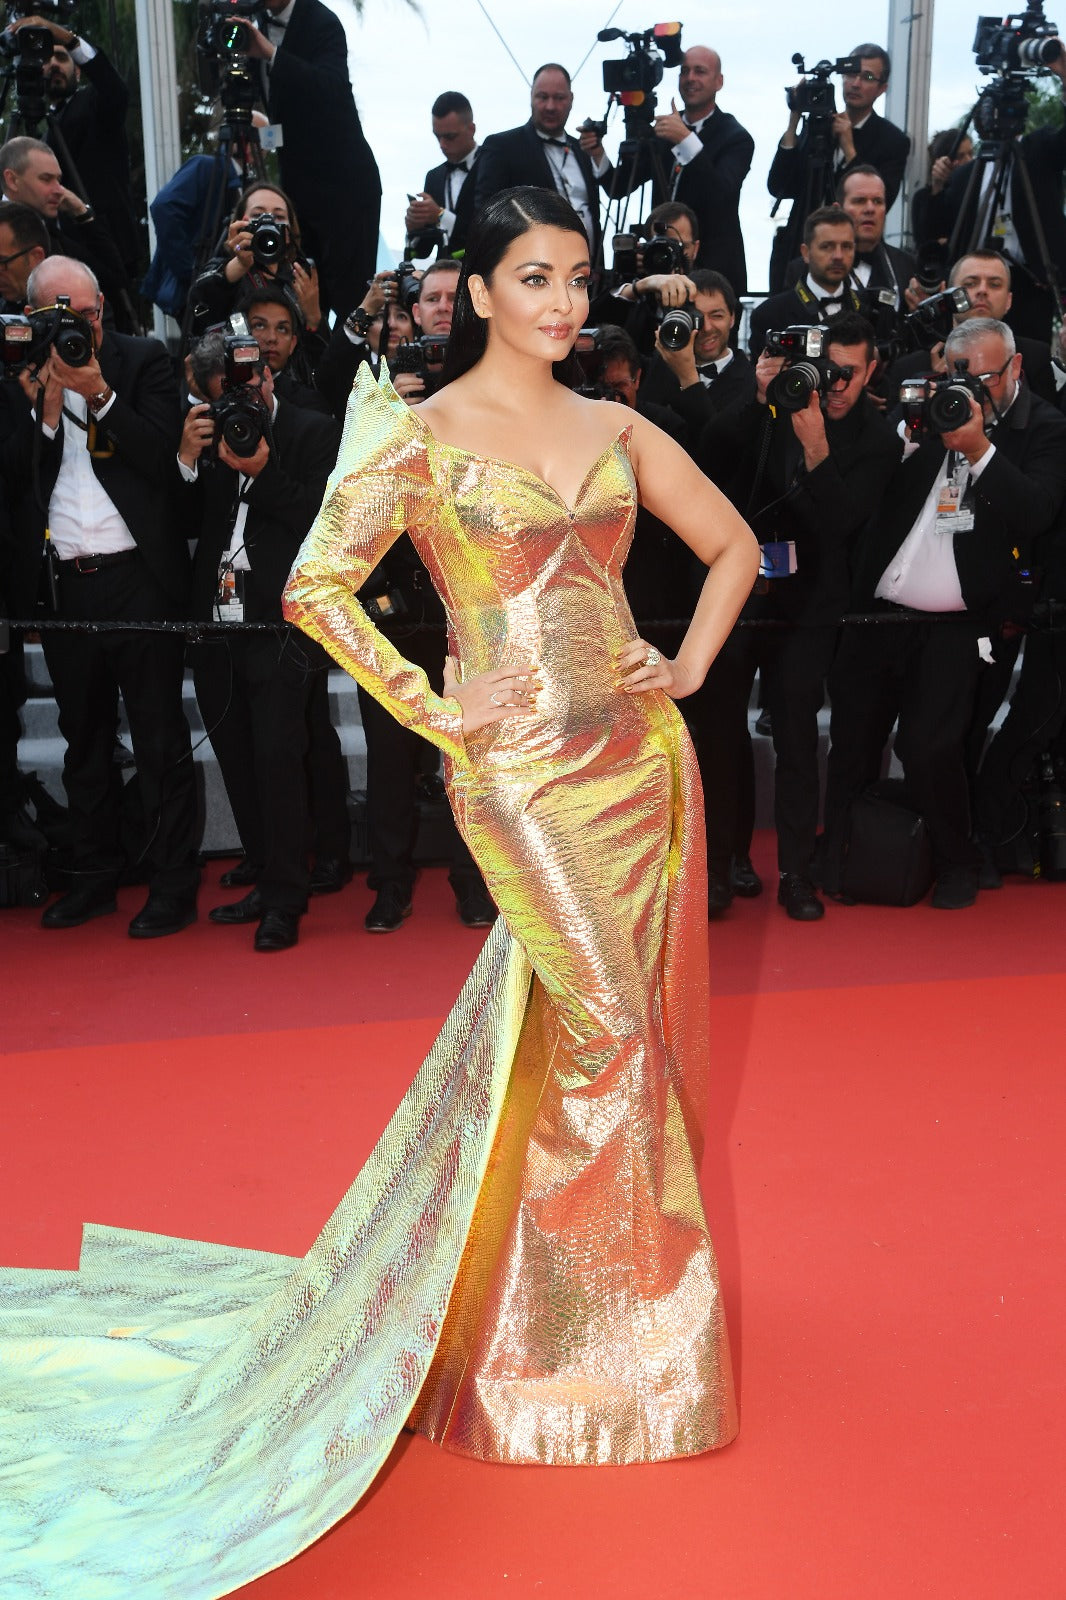 Aishwarya Rai in gold snakeskin Jean Louis Sabaji gown at cannes 2019